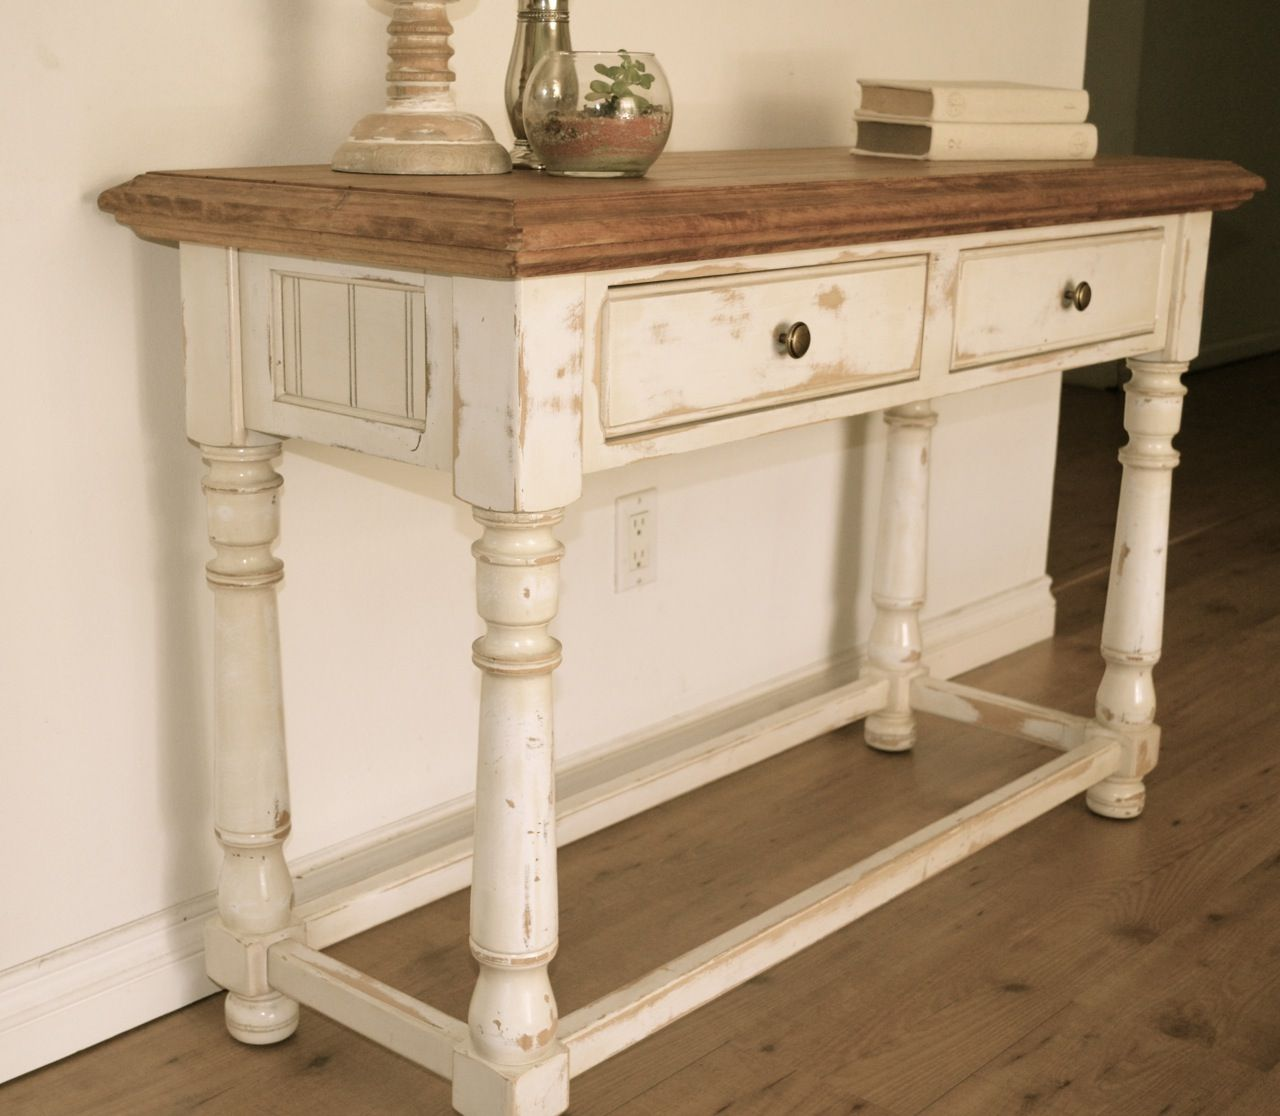 Decor Coffee Table Distressed Stockton Farm: Farmhouse Style Console Table. Distressed White Paint